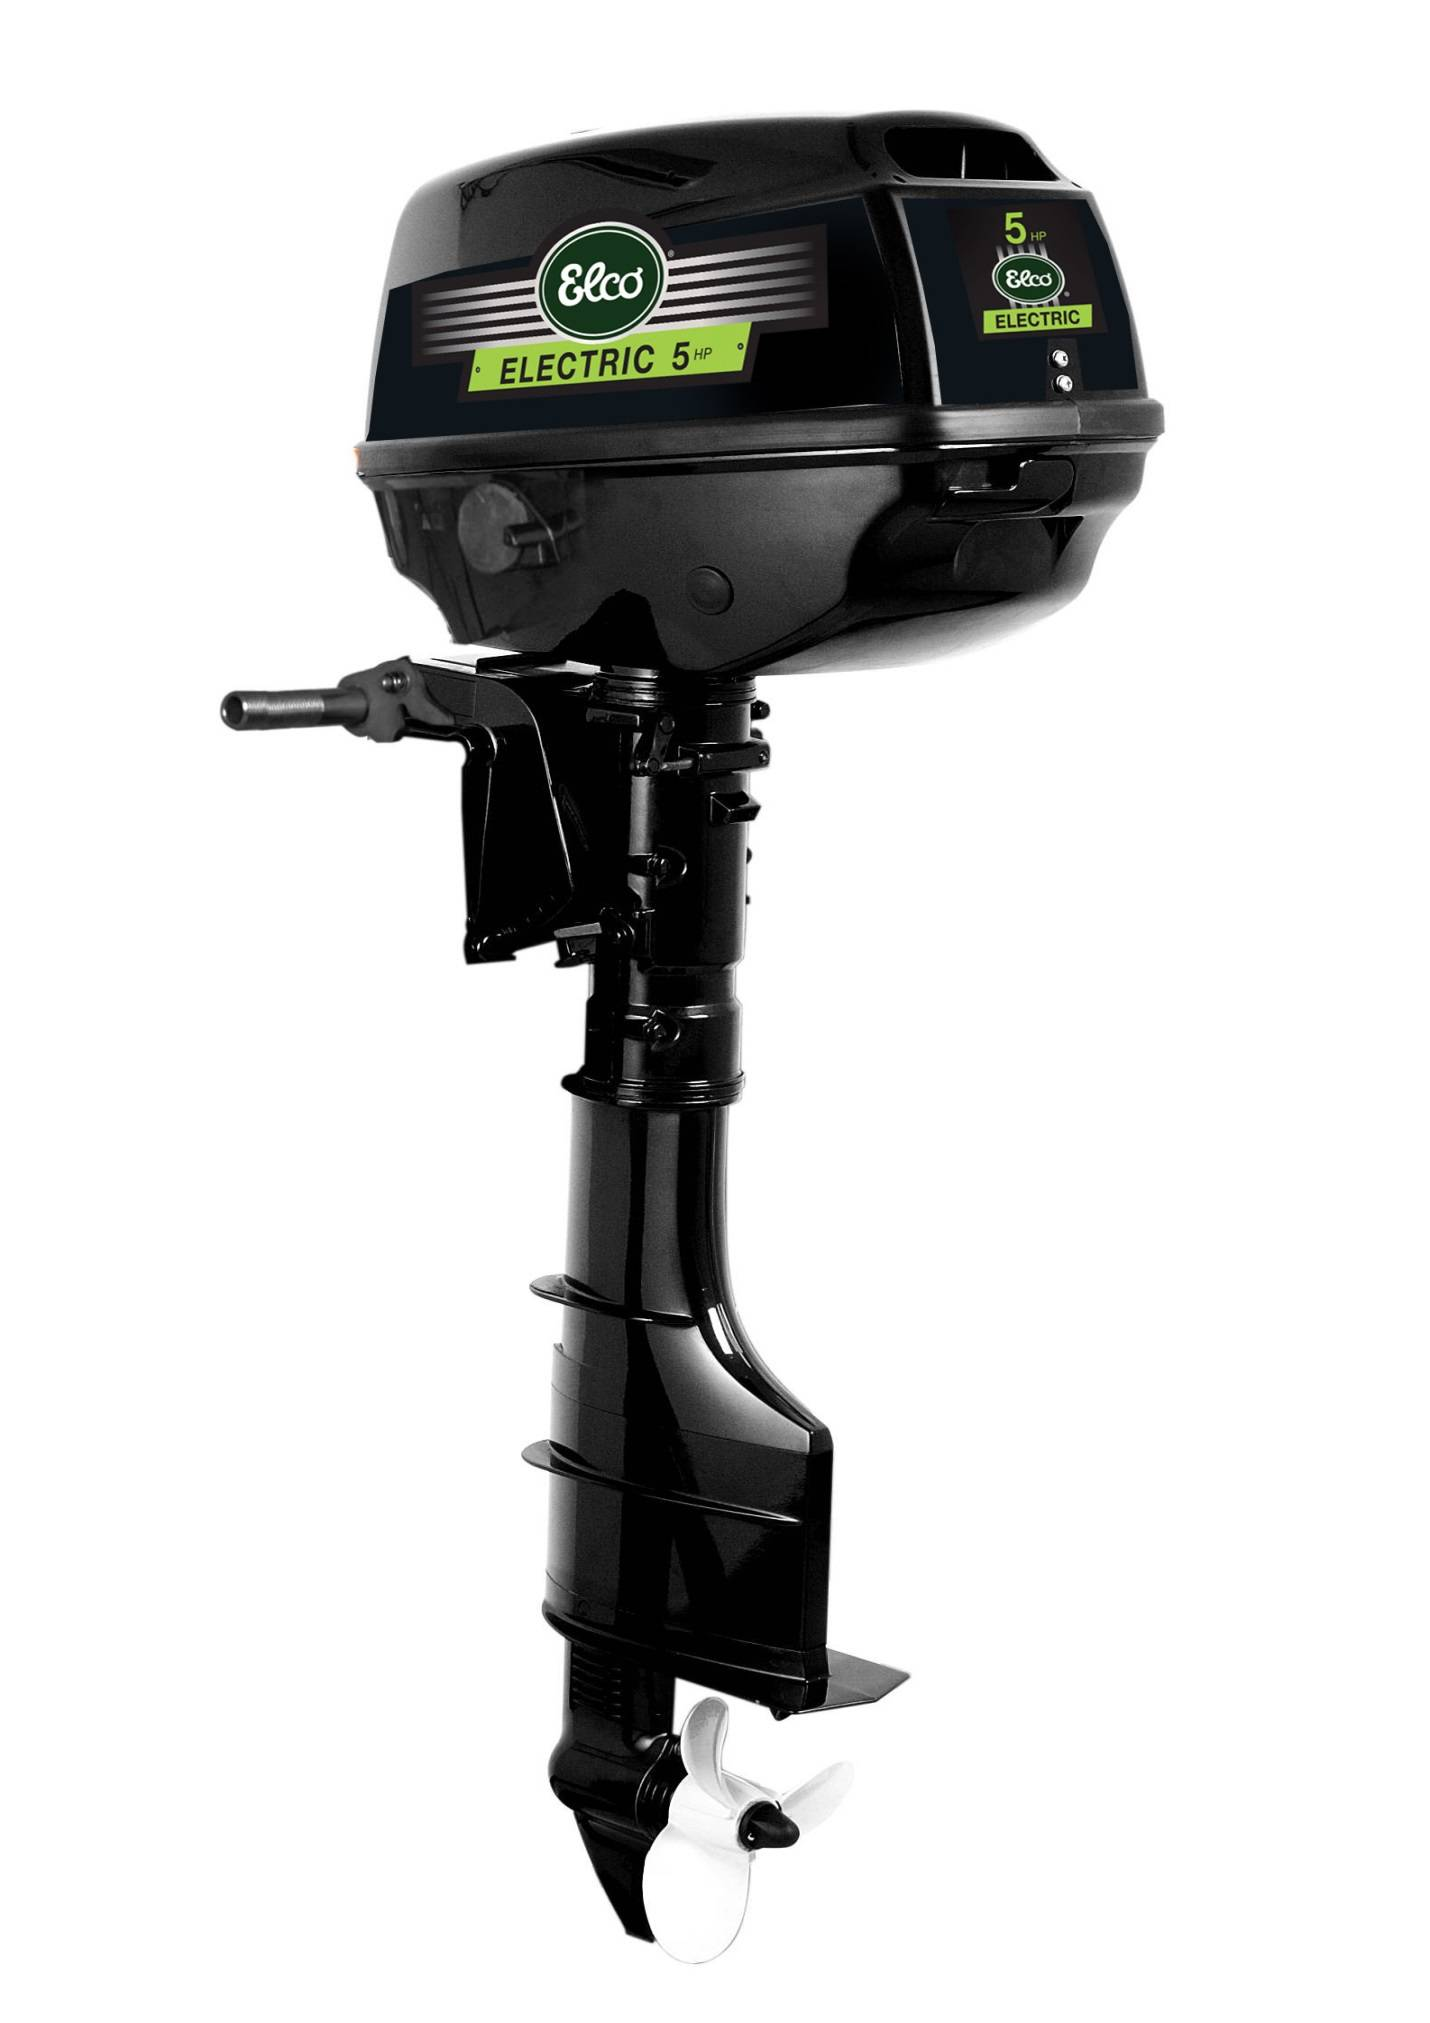 Elco Launches Electric Outboard Motor Line